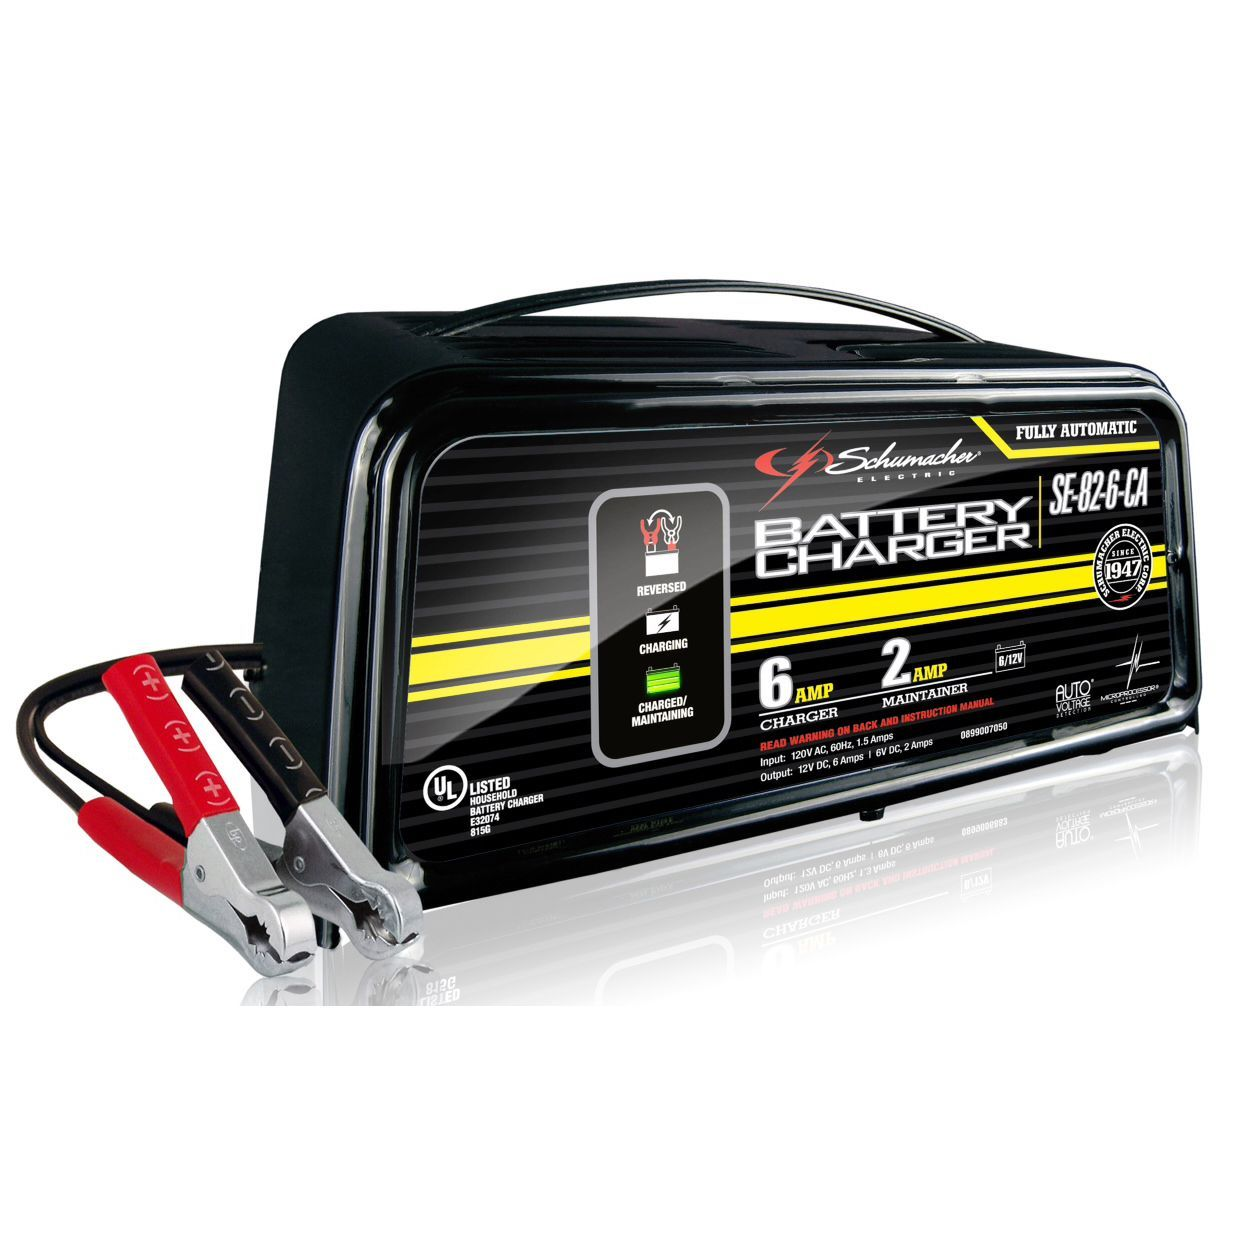 2 Amp DC 12 AC 120V Lithium Ion Battery Charger for Motorcycle Touring Bike